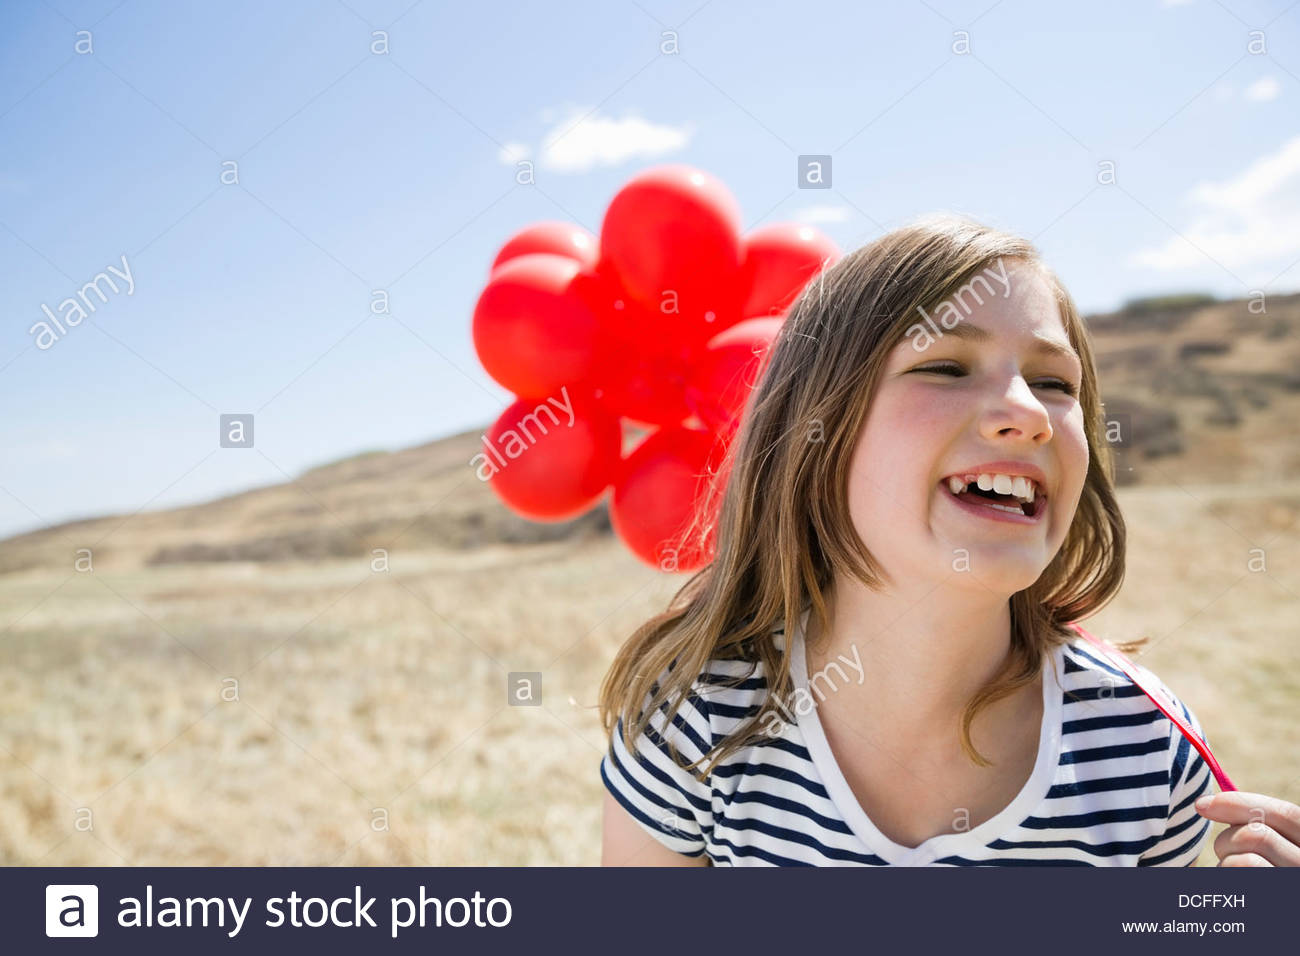 Smiling girl holding red balloons outdoors - Stock Image